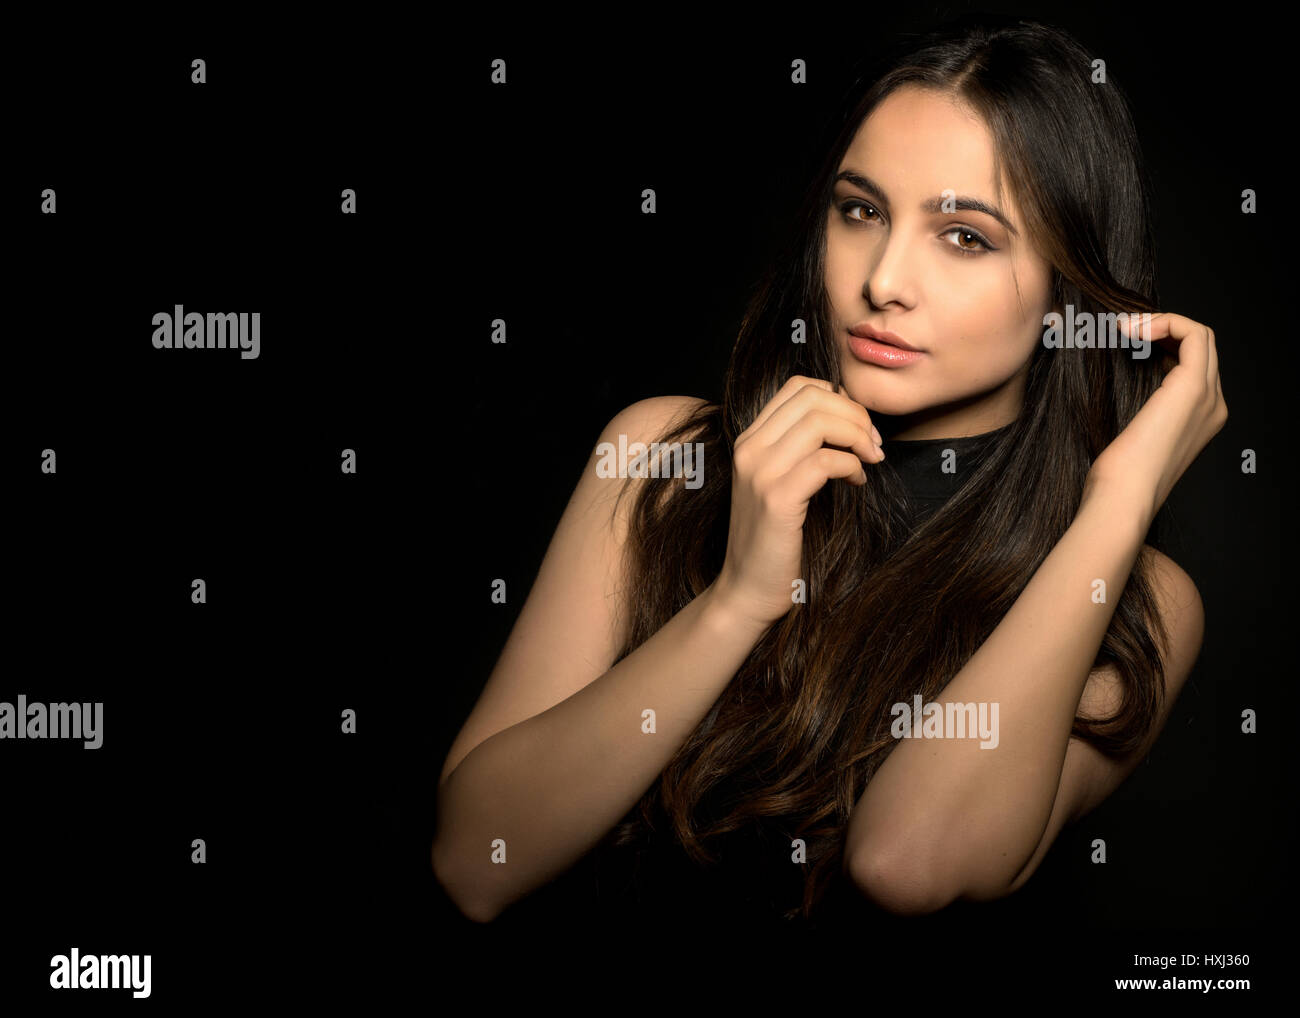 Fashion portrait of the beautiful young lady Stock Photo